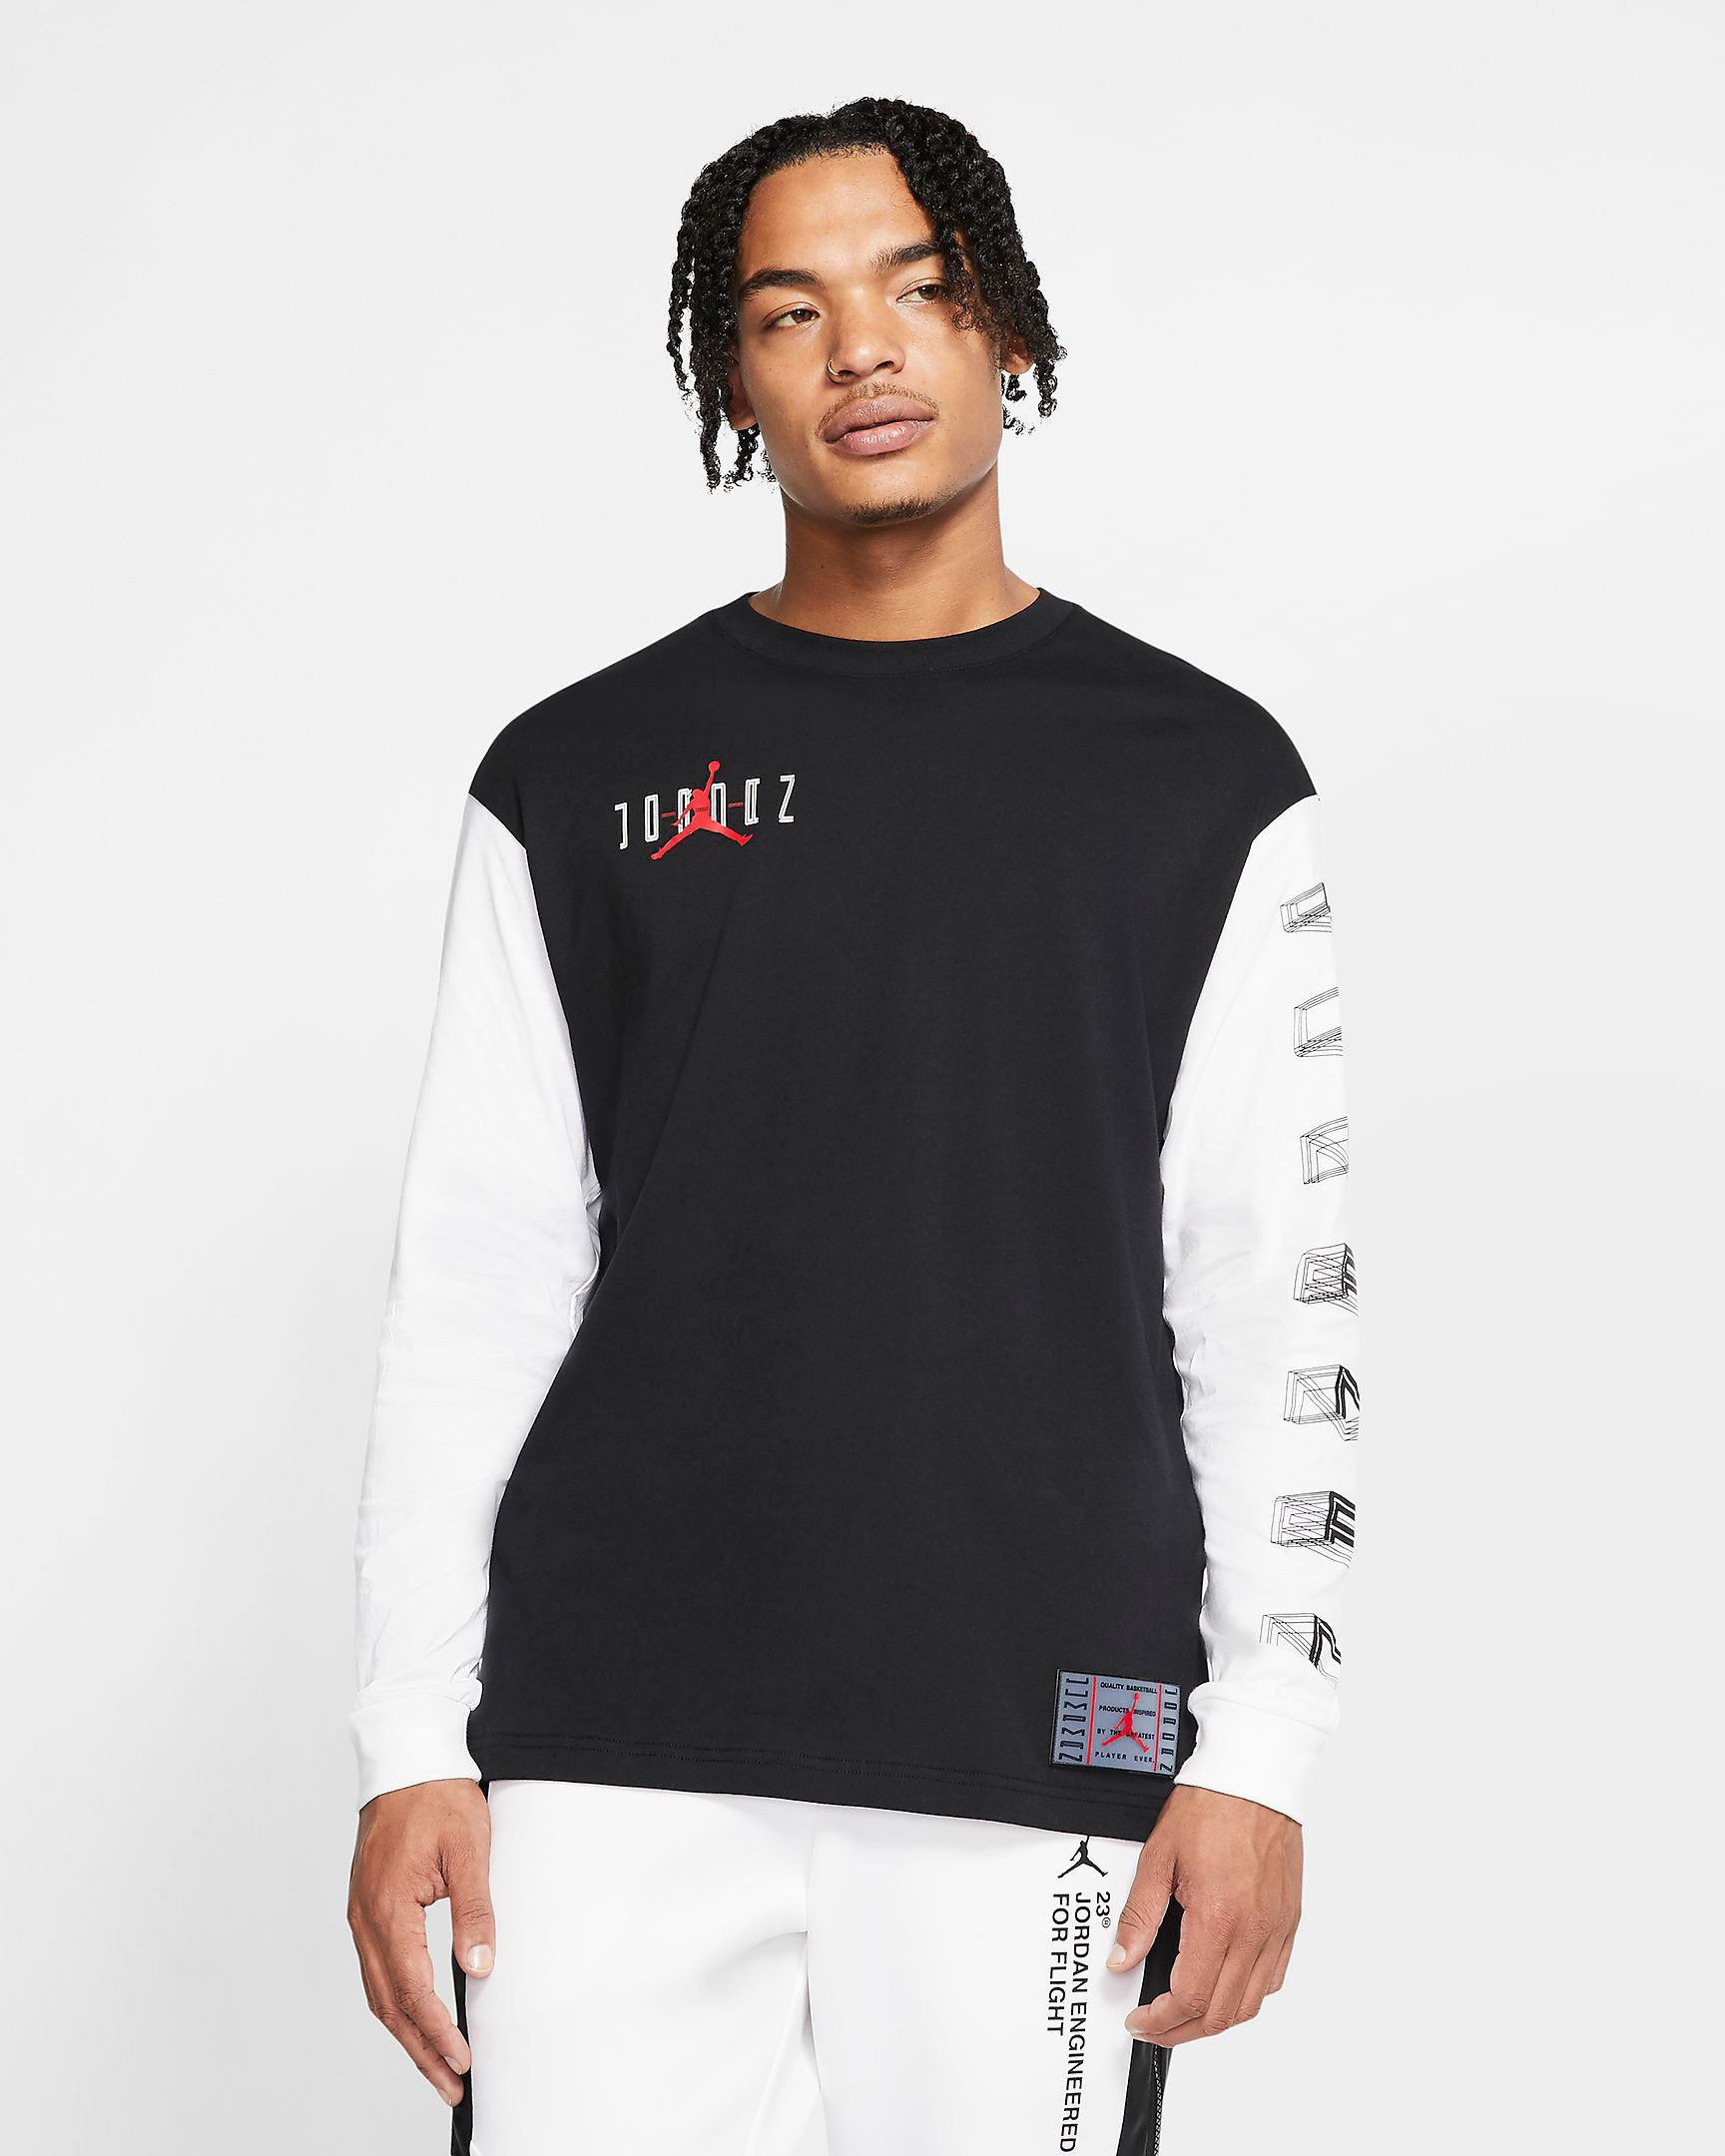 air-jordan-11-bred-2019-long-sleeve-tee-1